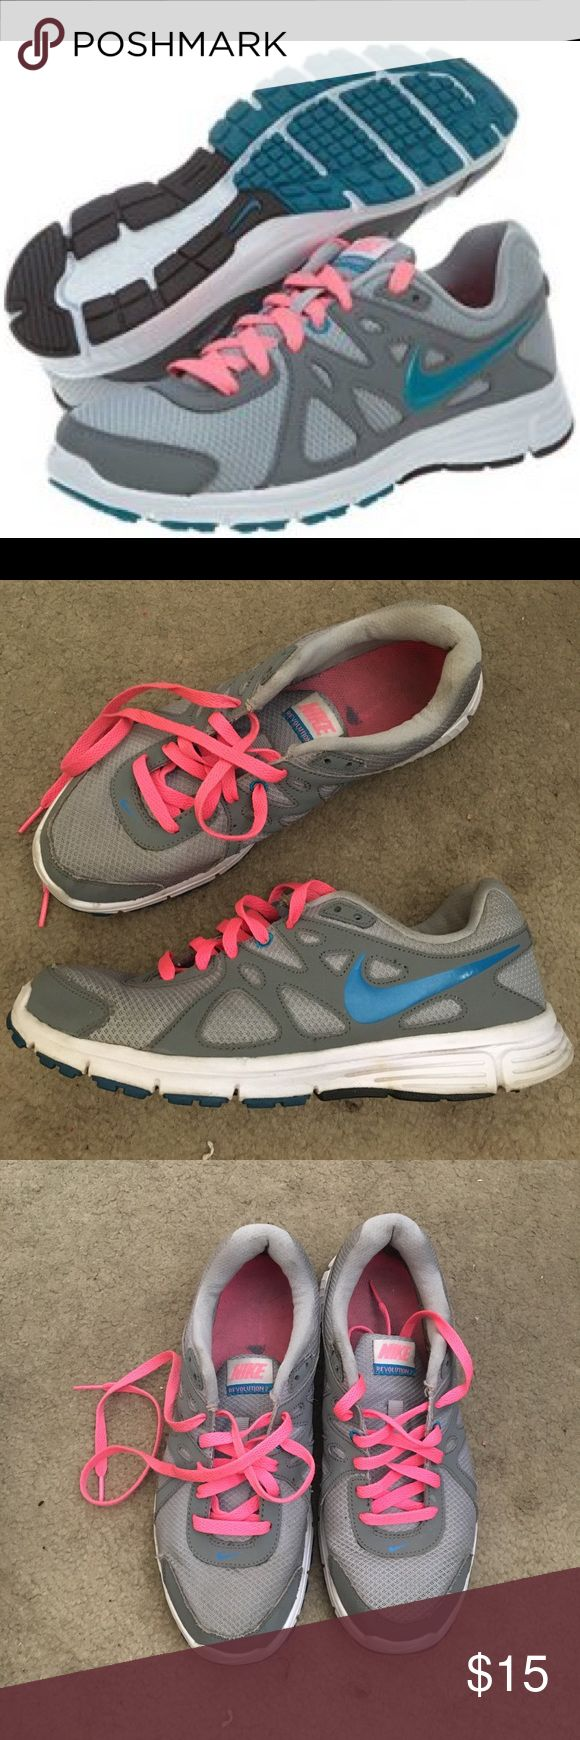 Nike revolution 2 teal grey and pink shoes Nike revolution 2 running shoes. Great with teal blue and hot pink details. Perfect everyday running shoe. Some scuffs, holes and small stains. Nike Shoes